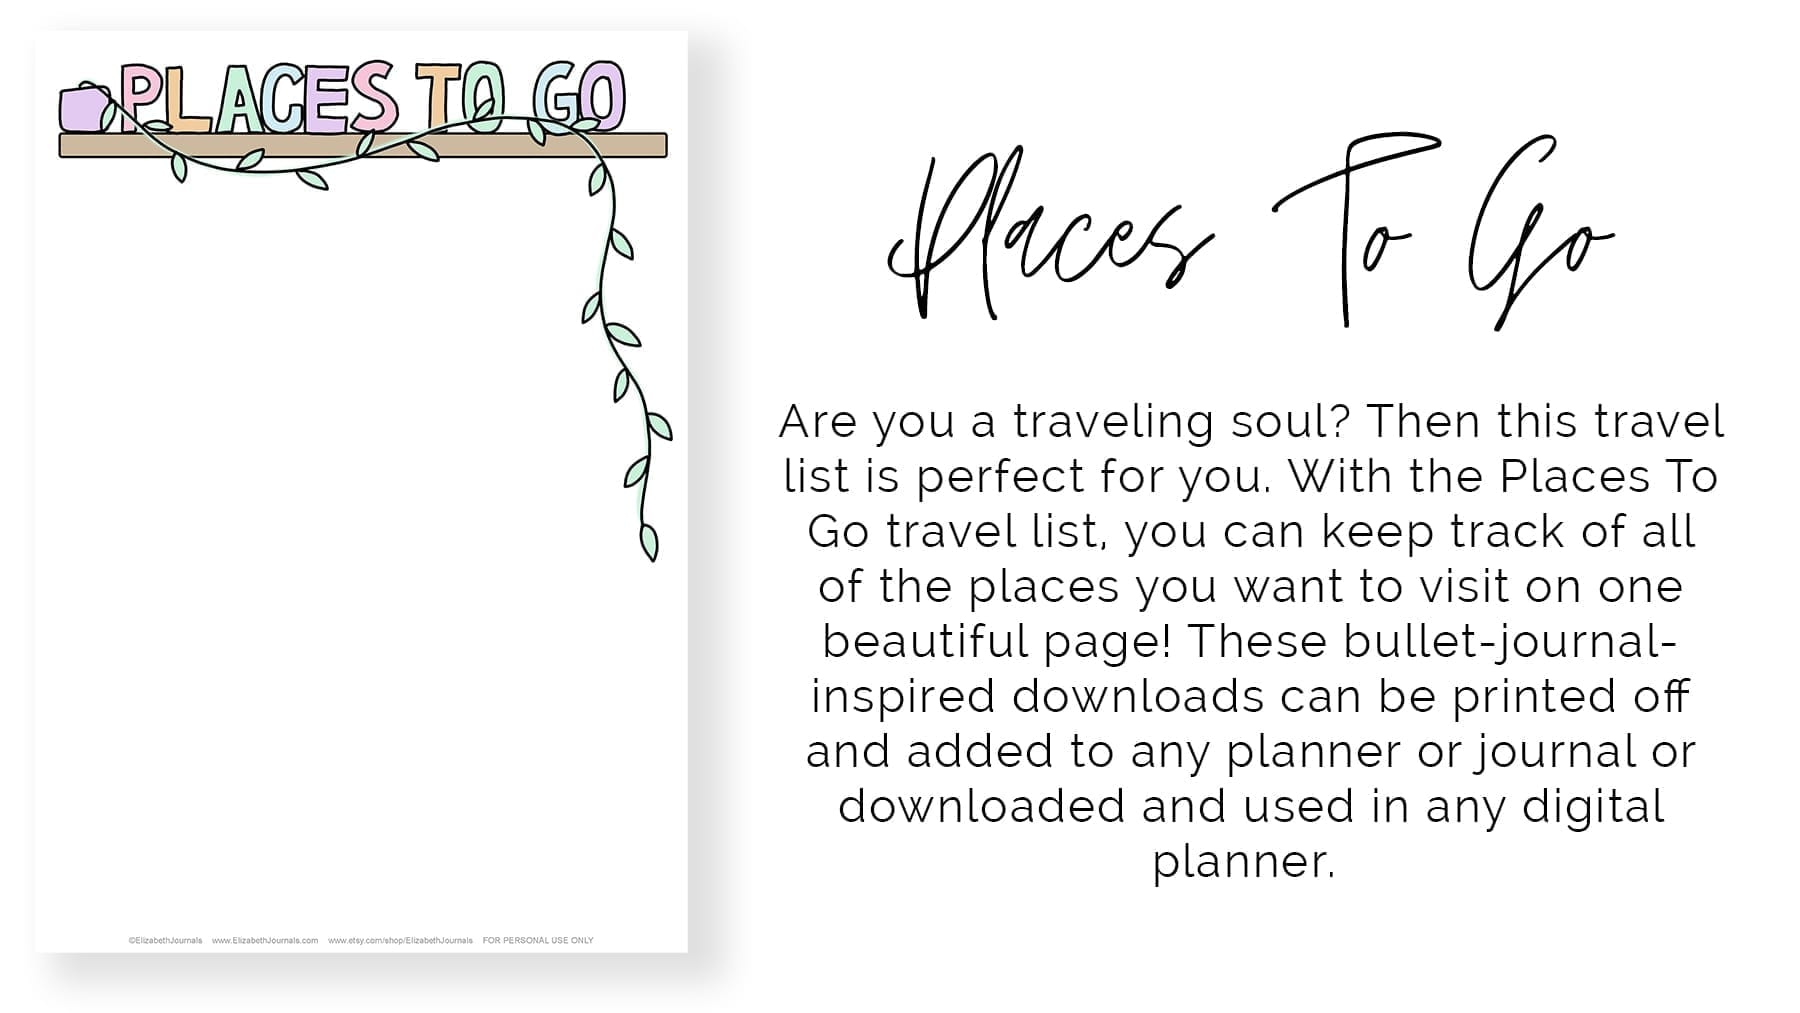 places to go banner. Are you a traveling soul? Then this travel list is perfect for you. With the Places To Go travel list, you can keep track of all of the places you want to visit on one beautiful page! These bullet-journal-inspired downloads can be printed off and added to any planner or journal or downloaded and used in any digital planner. Instantly download the PDF of these designs once you purchase the listing. You will get one download to use immediately!